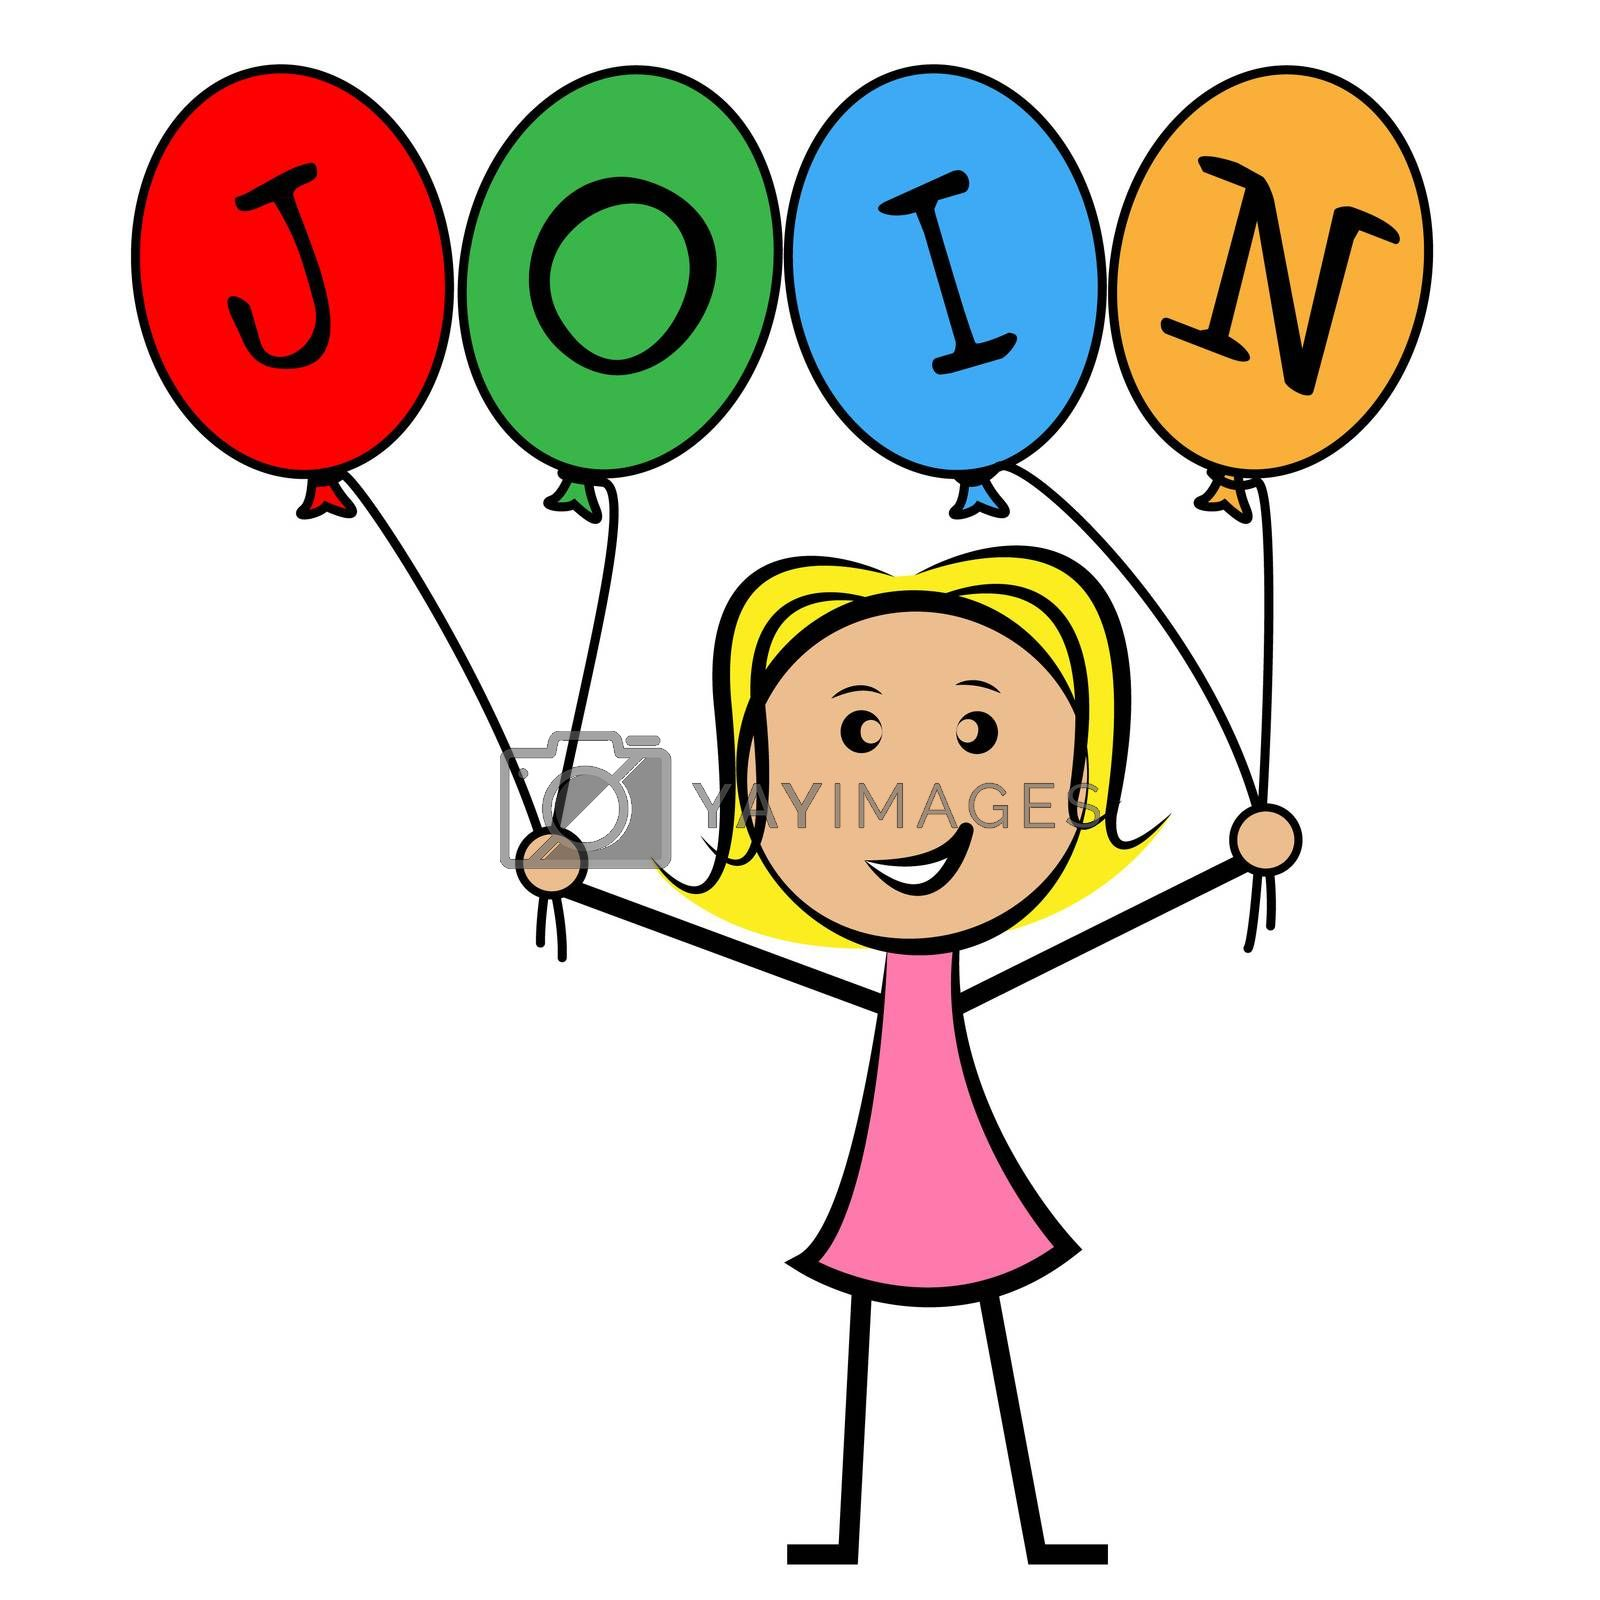 Join Balloons Indicates Sign Up And Kids by stuartmiles